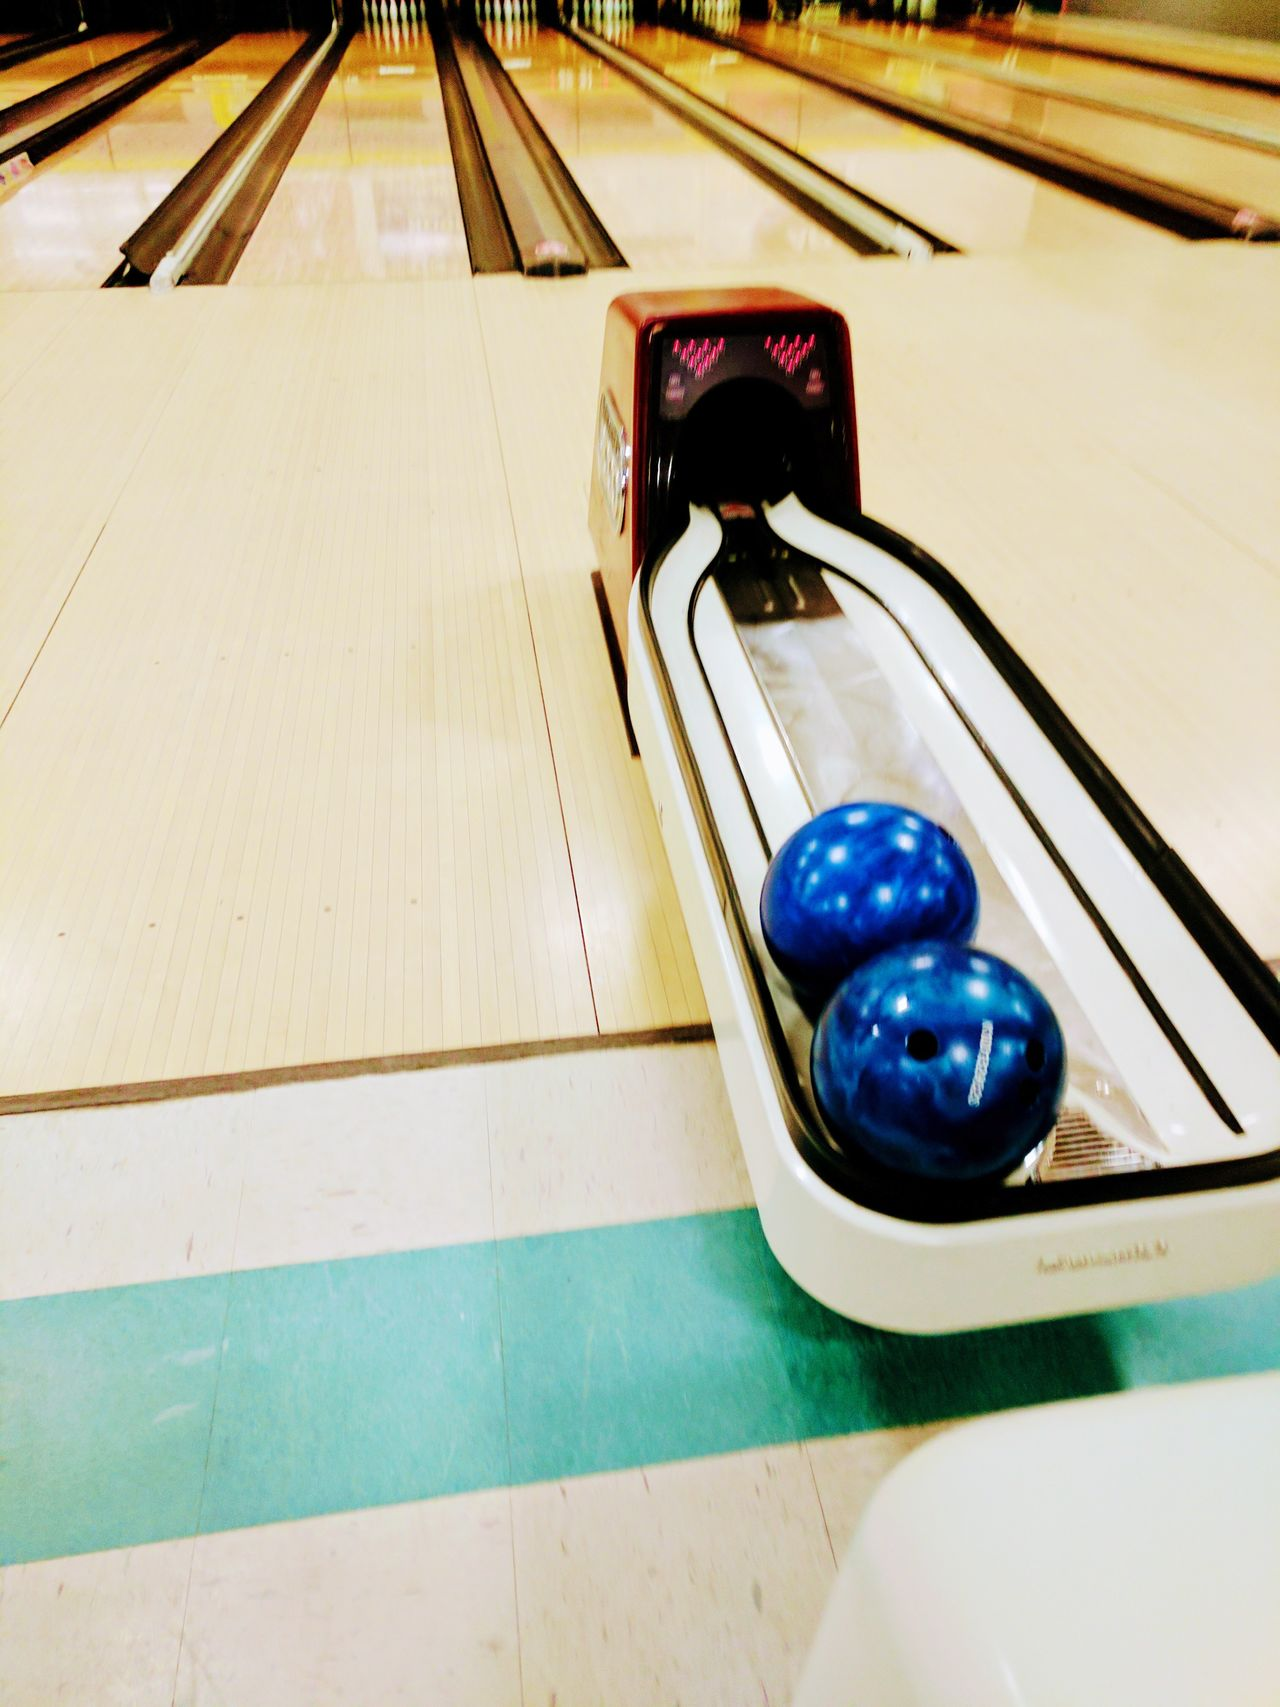 No People Indoors  Bowling Alley Bowing Balls blue